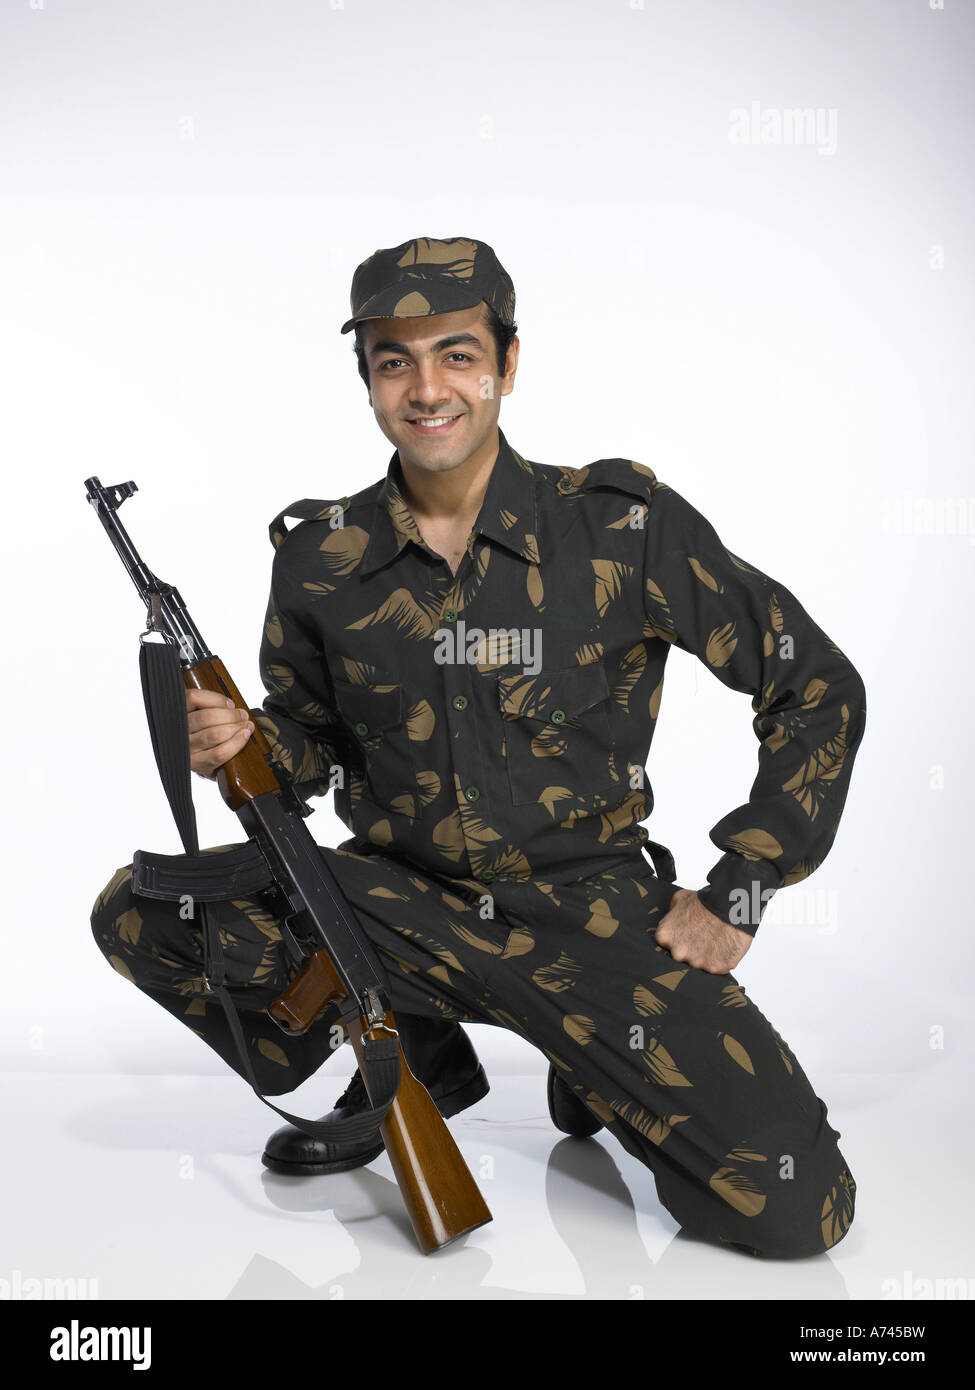 VDA 201714 Indian Army Soldier Sitting On Knee Holding AK 47 Gun MR 702A